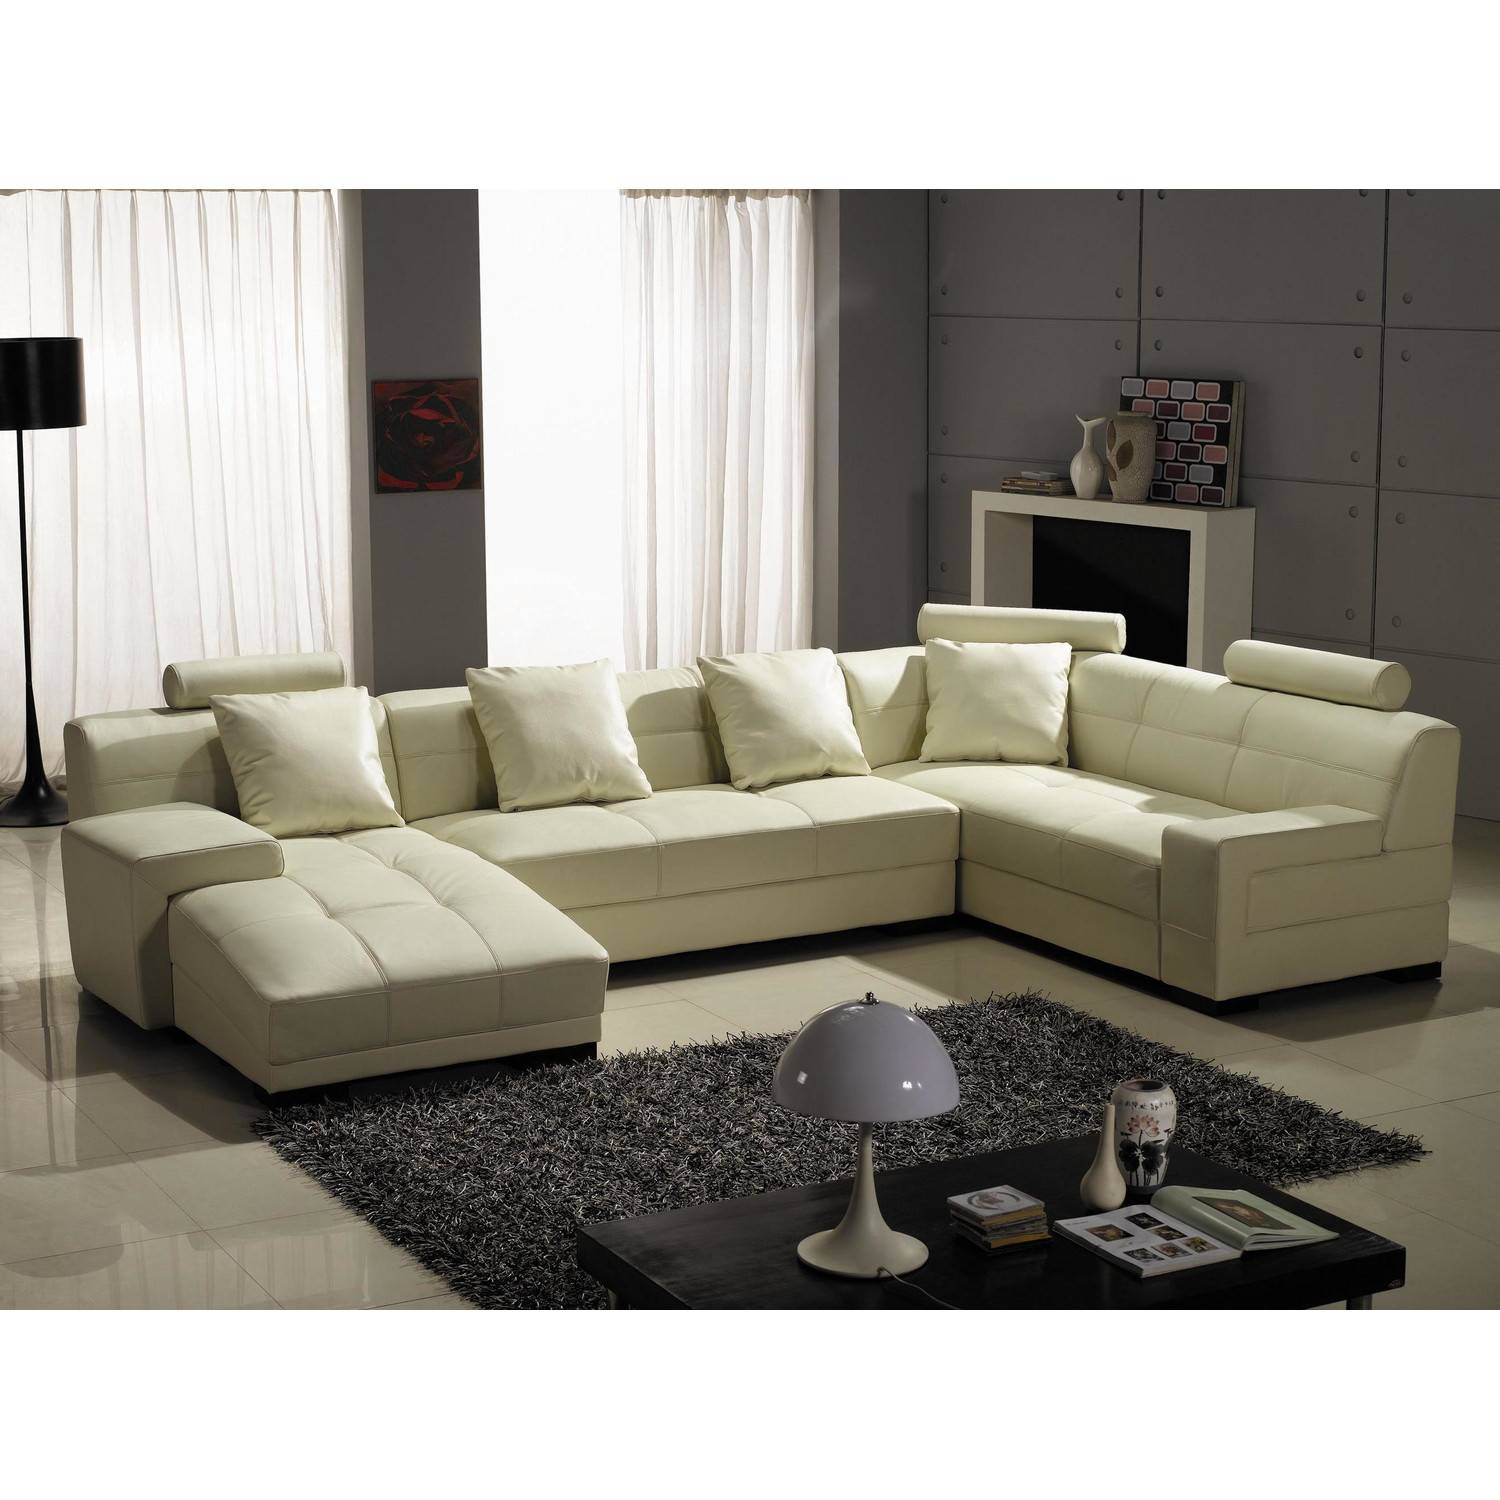 Interior: Admirable Oversized Sectional Sofas With Oversized intended for Houston Sectional Sofa (Image 7 of 25)